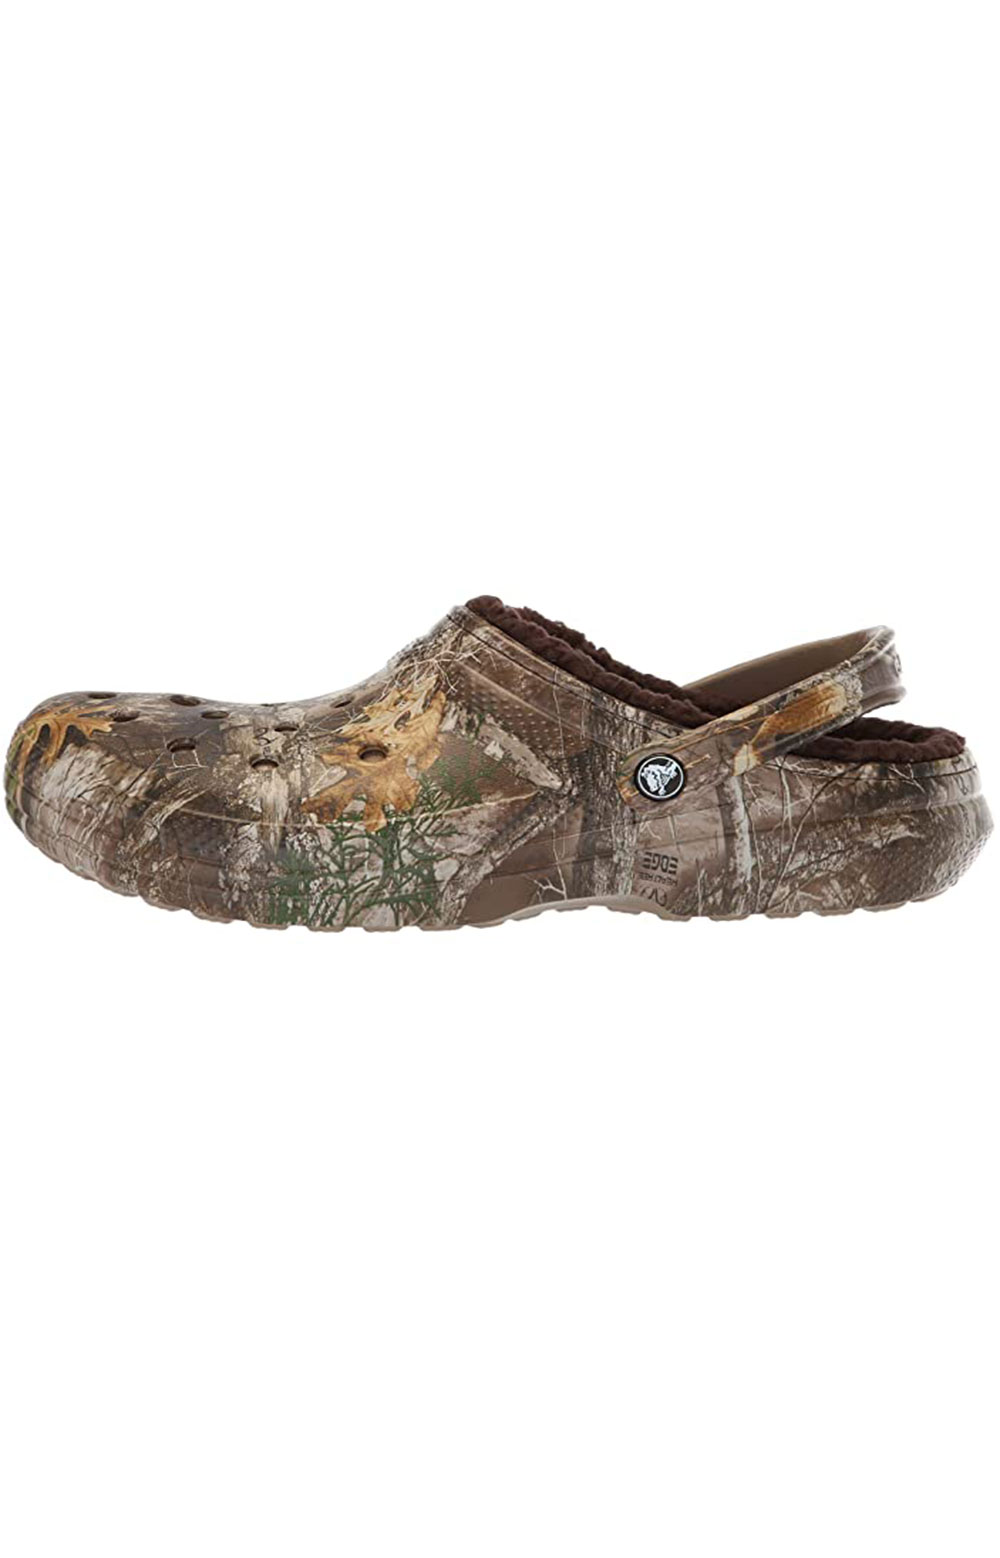 Classic Lined Realtree Edge Clogs - Chocolate/Chocolate 6